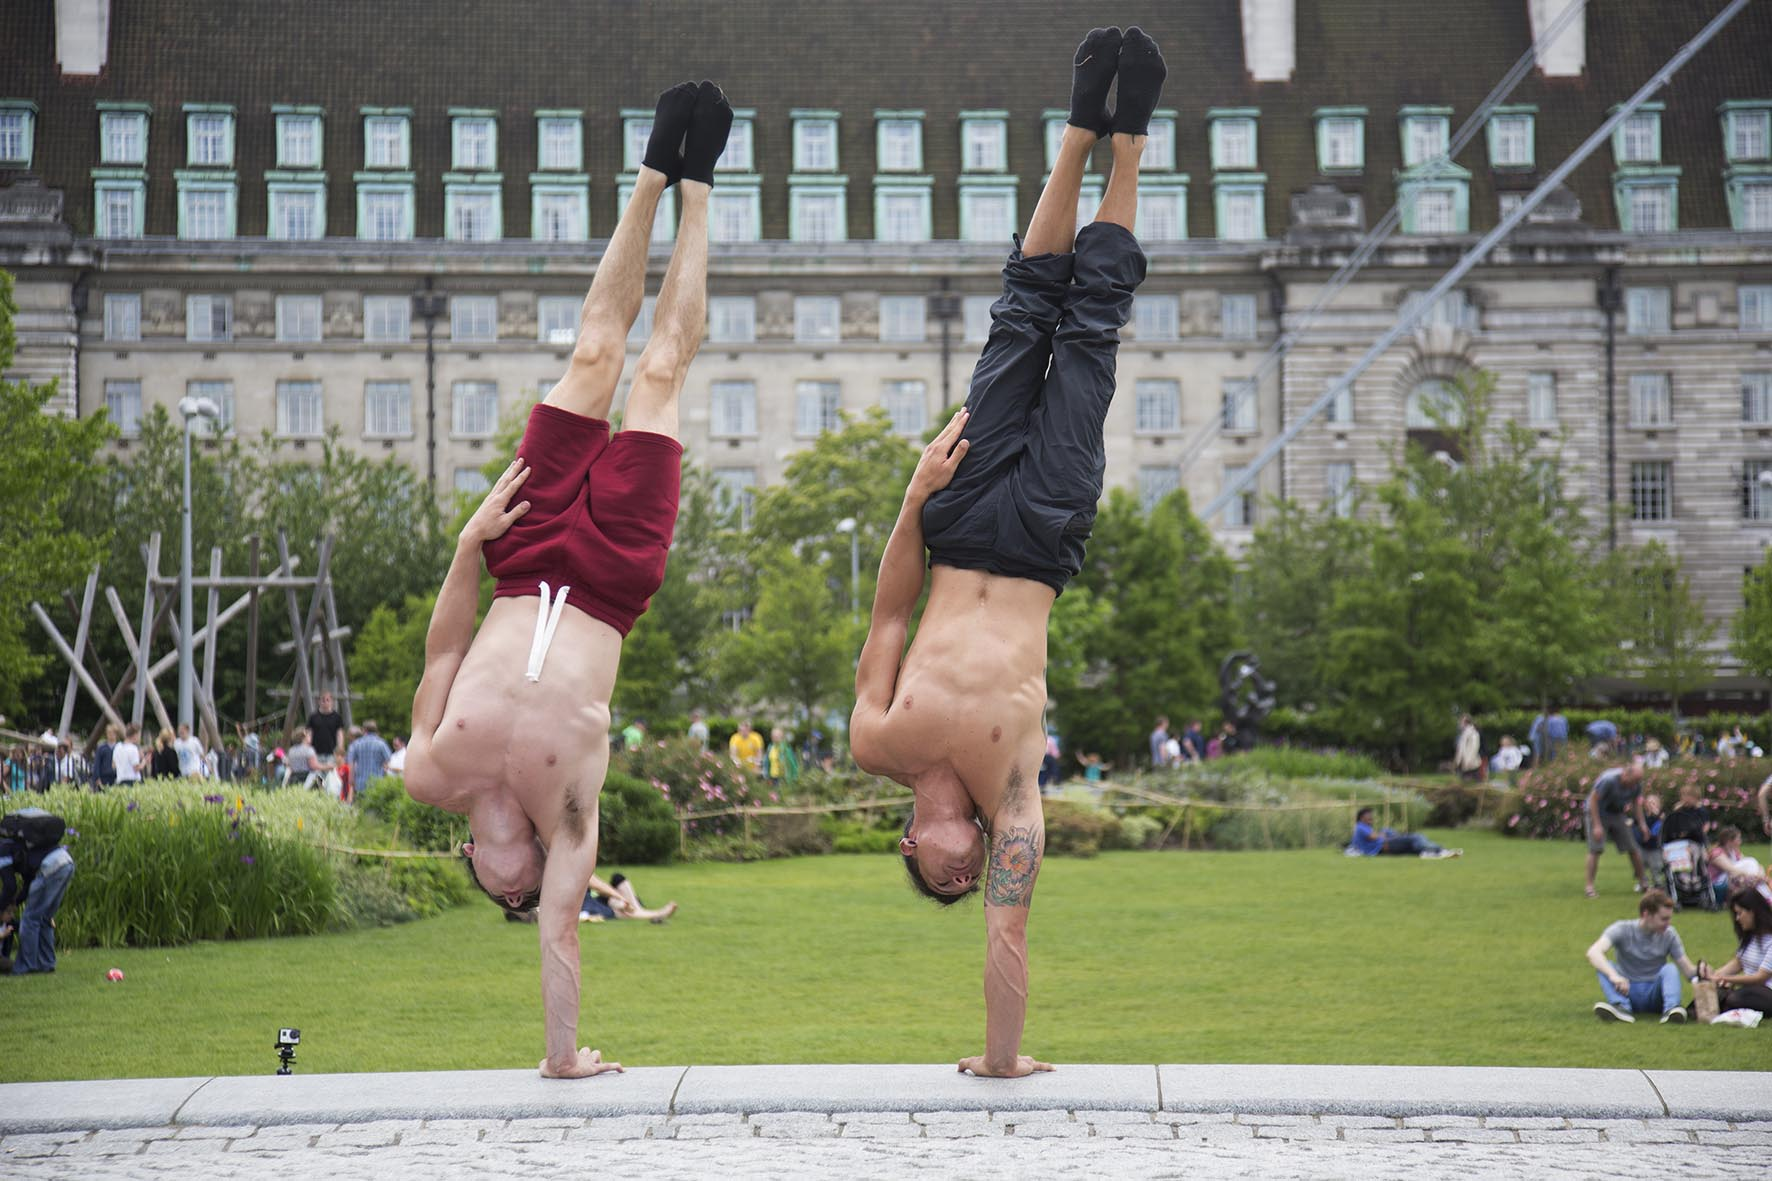 Daniel and Miguel, acrobats from Gravity & Other Myths Circus.